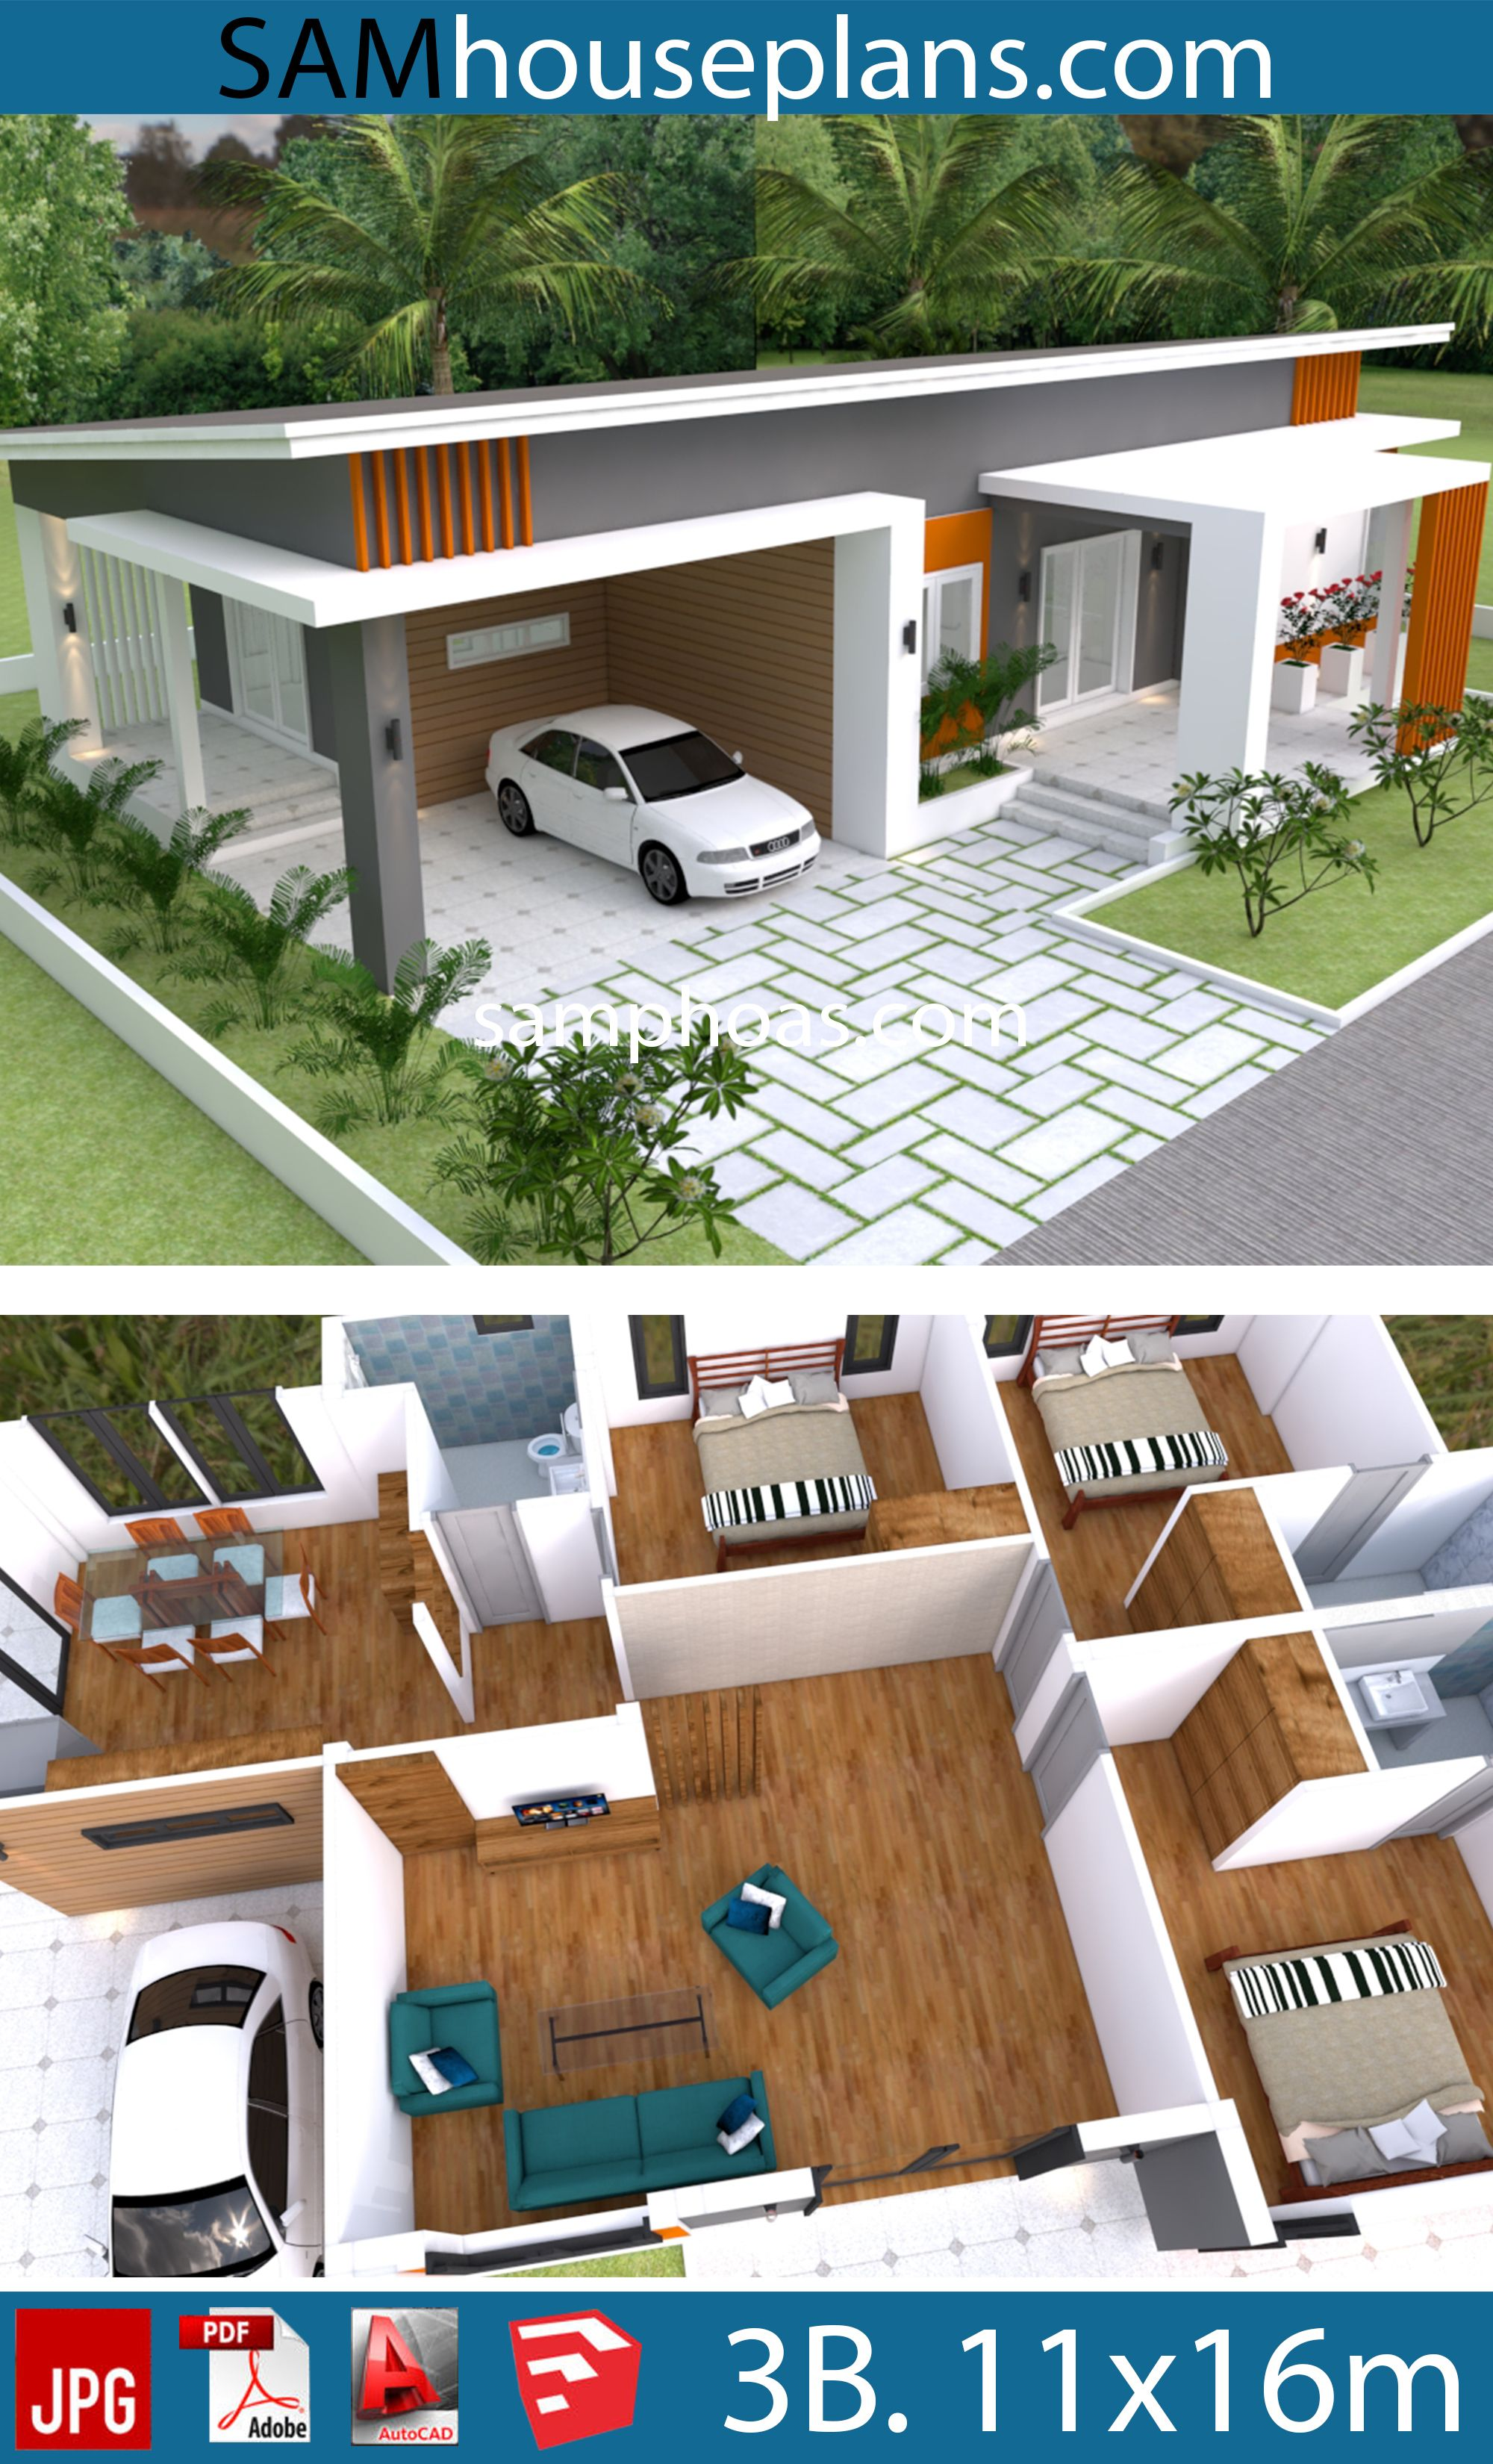 Home Plan 11x16m With 3 Bedrooms House Plans Free Downloads Architectural House Plans House Plan Gallery Bedroom House Plans